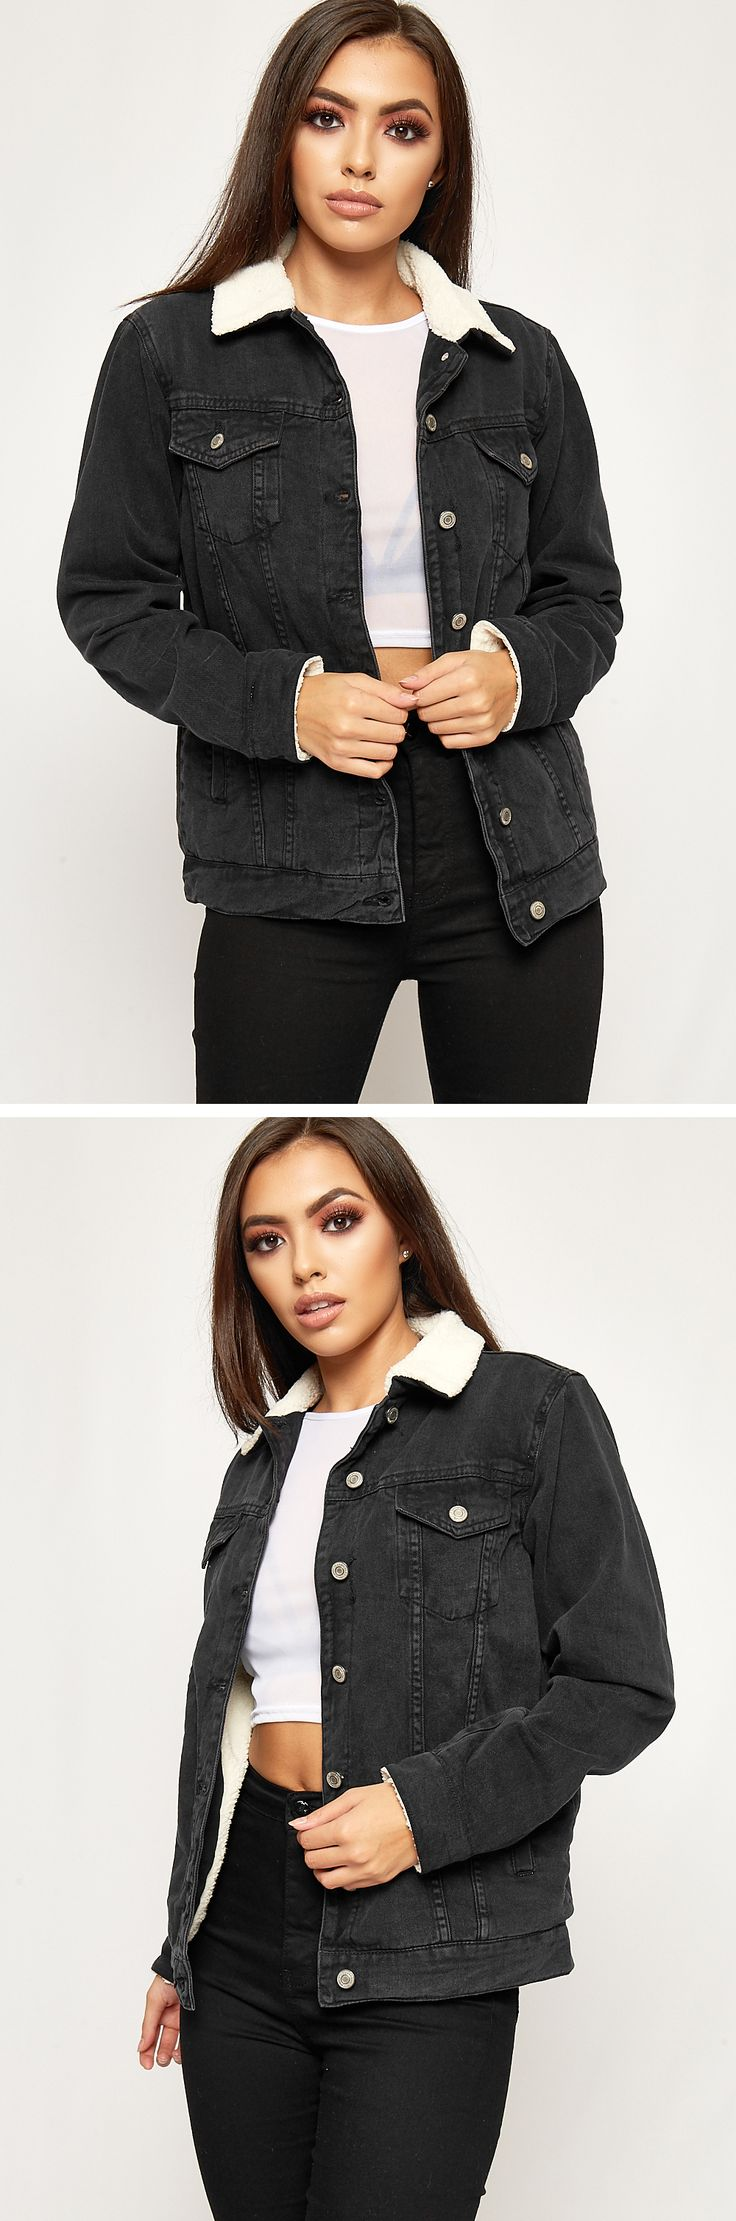 Looking fierce in a classic denim borg jacket with faux fur fleece lining. Made from a soft and vintage look black denim and finished with a classic button up front look and a stunning fleece lined fabric. Pair with crop top and high waist jeans for a killer look this season.